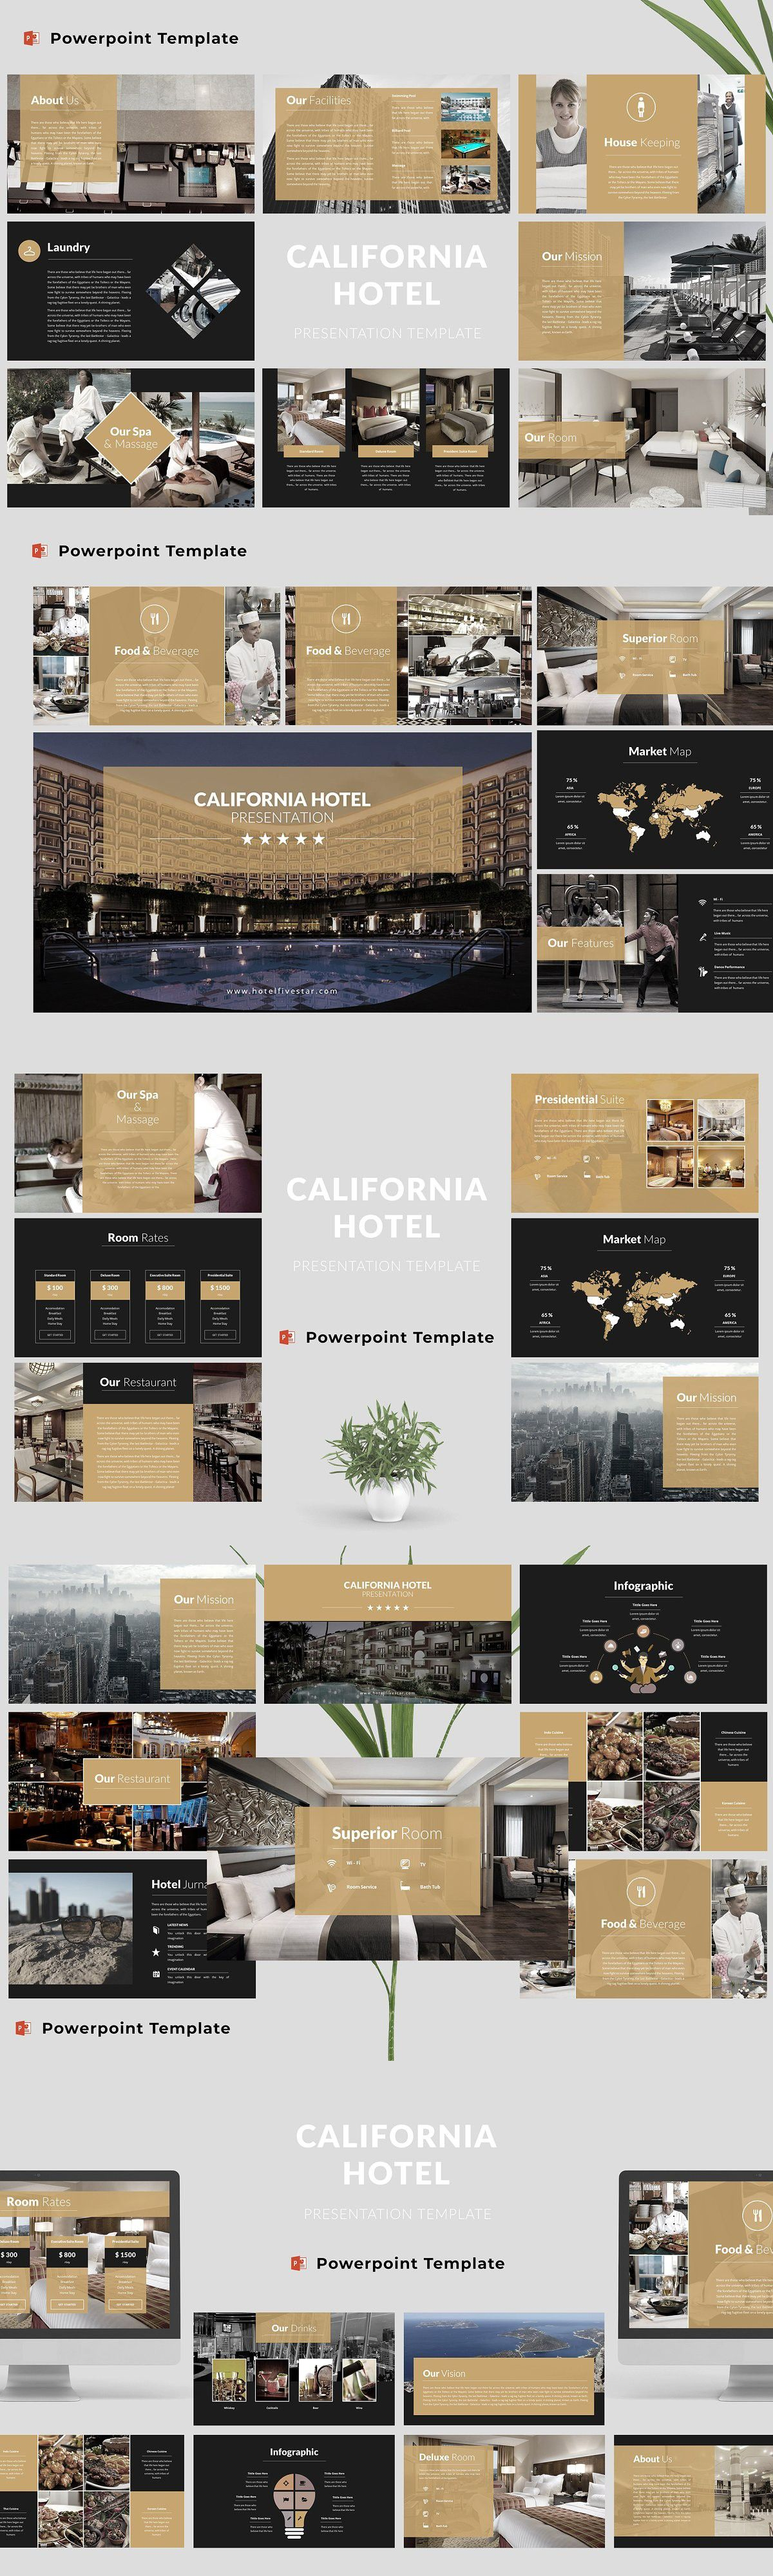 Hotel Powerpoint Template In 2020 Powerpoint Templates Real Estates Design Powerpoint